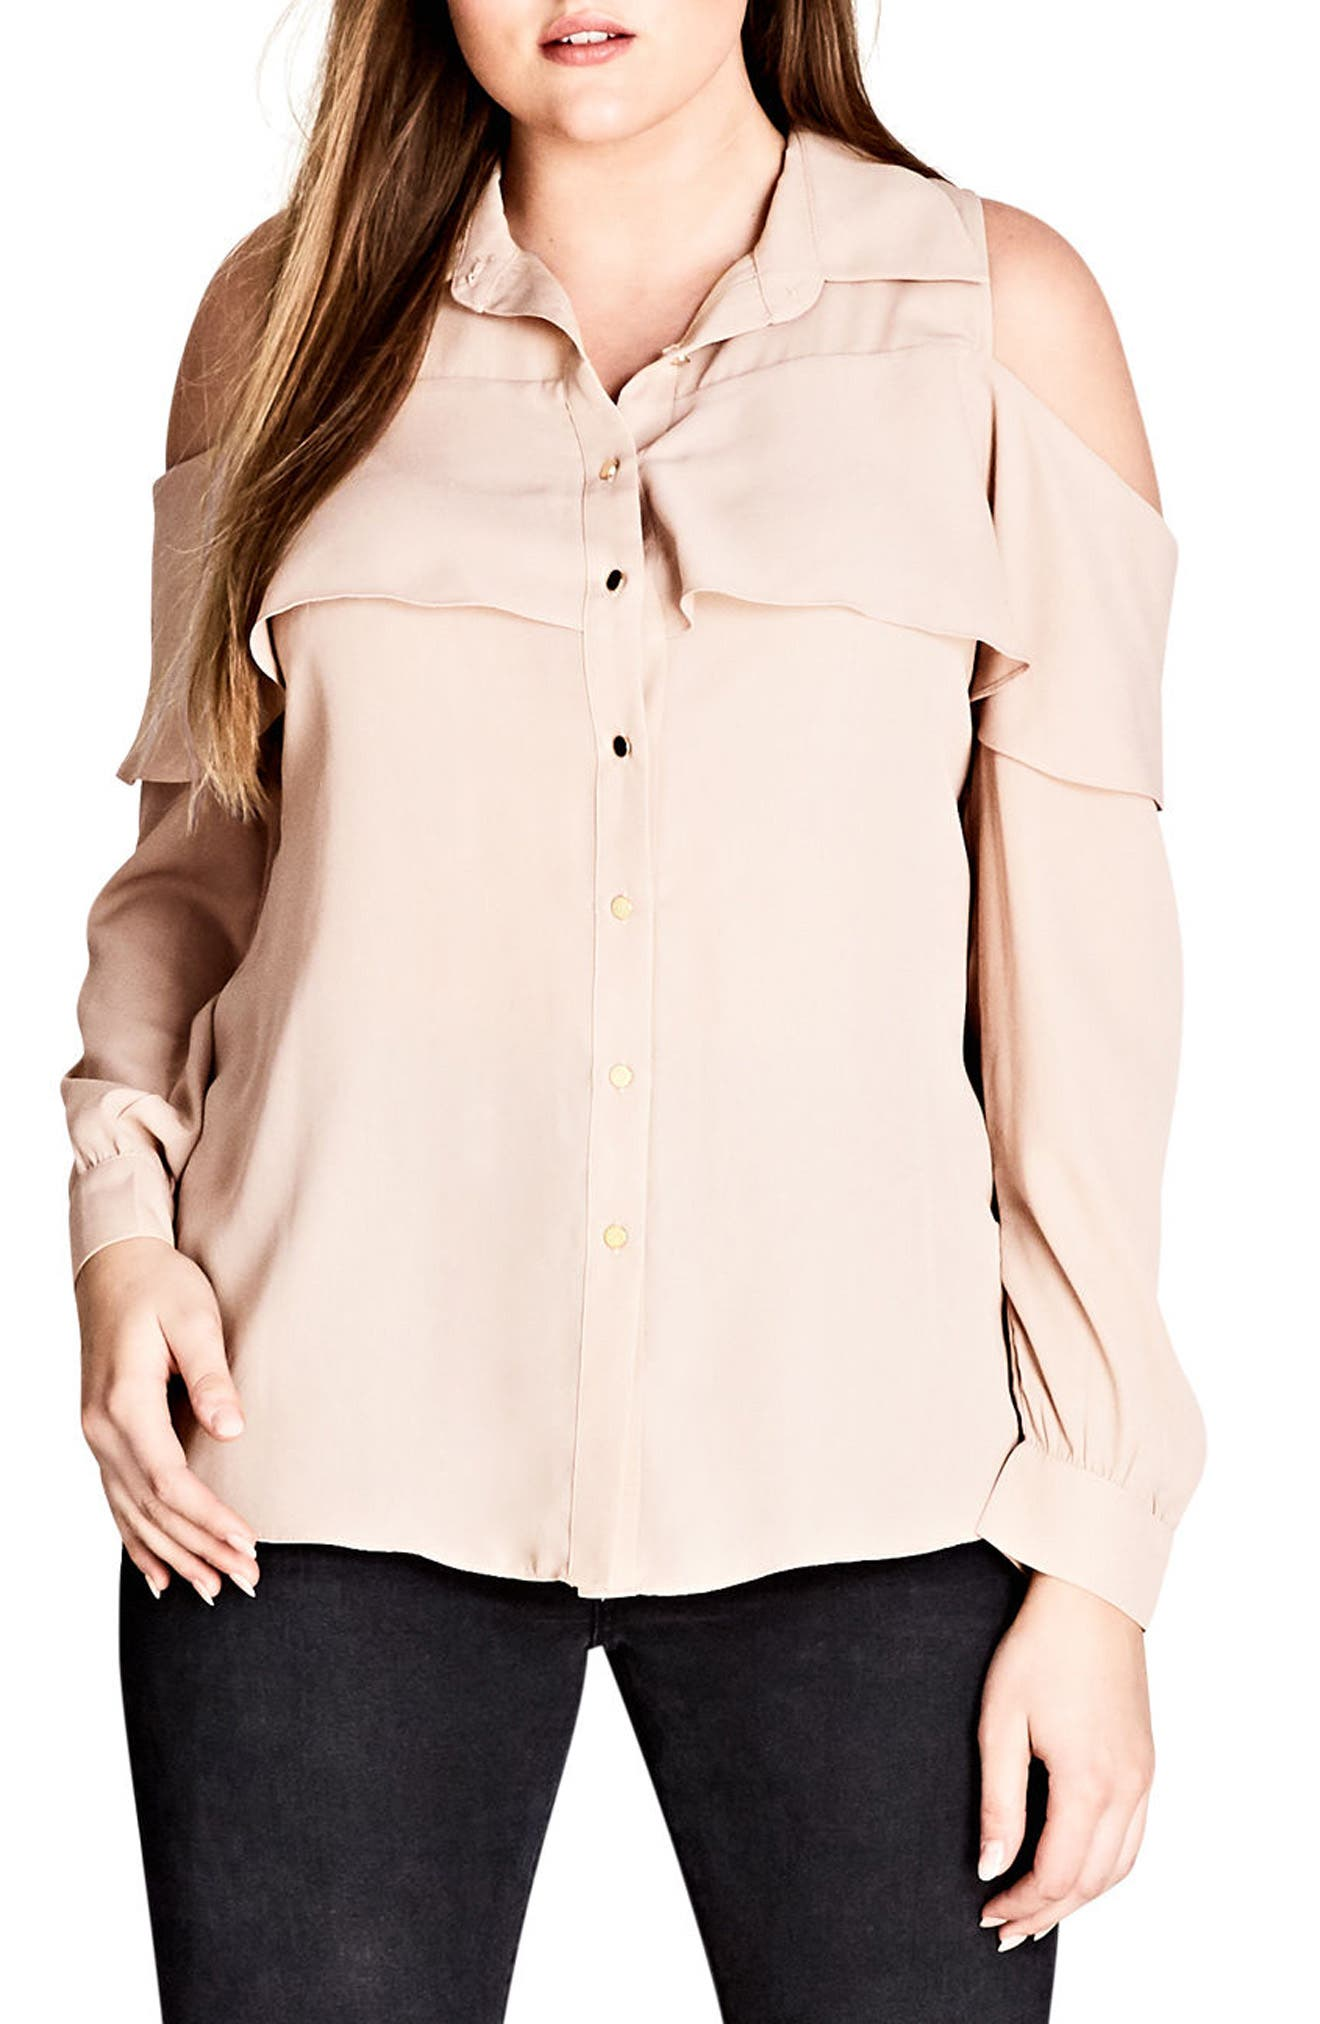 Main Image - City Chic Frill Cold Shoulder Shirt (Plus Size)